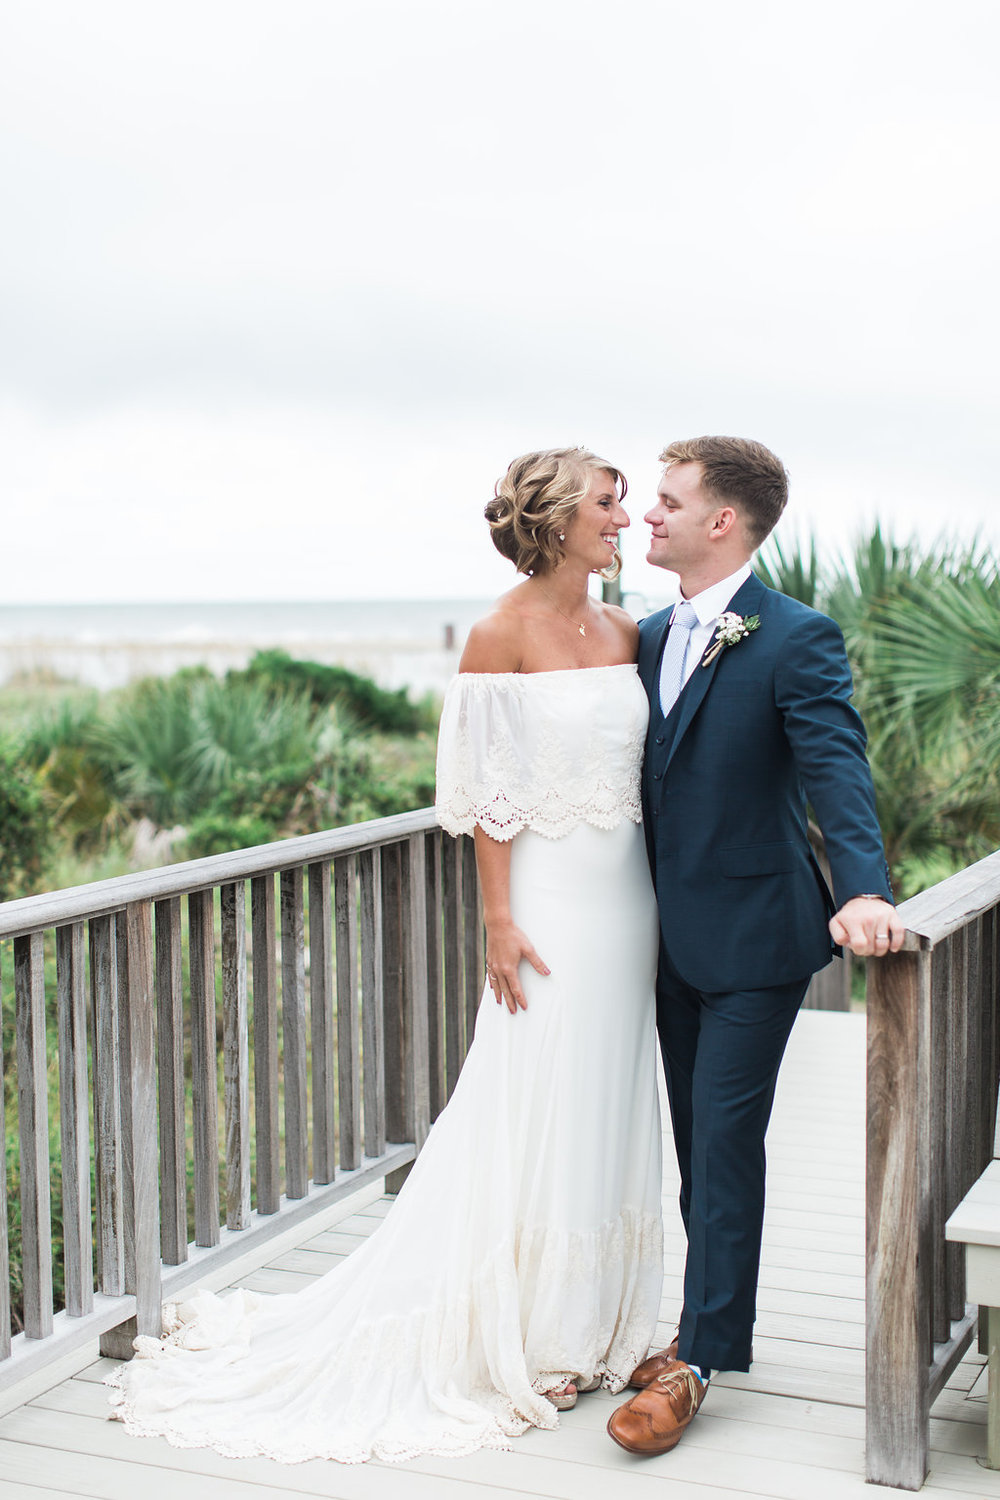 stacey-and-tj-wedding-apartment-b-photography-ivory-and-beau-bridal-boutique-savannah-wedding-dresses-daughters-of-simone-lu-boho-bride-boho-wedding-savannah-boho-wedding-savannah-weddings-savannah-bridal-gowns-savannah-wedding-16.jpg